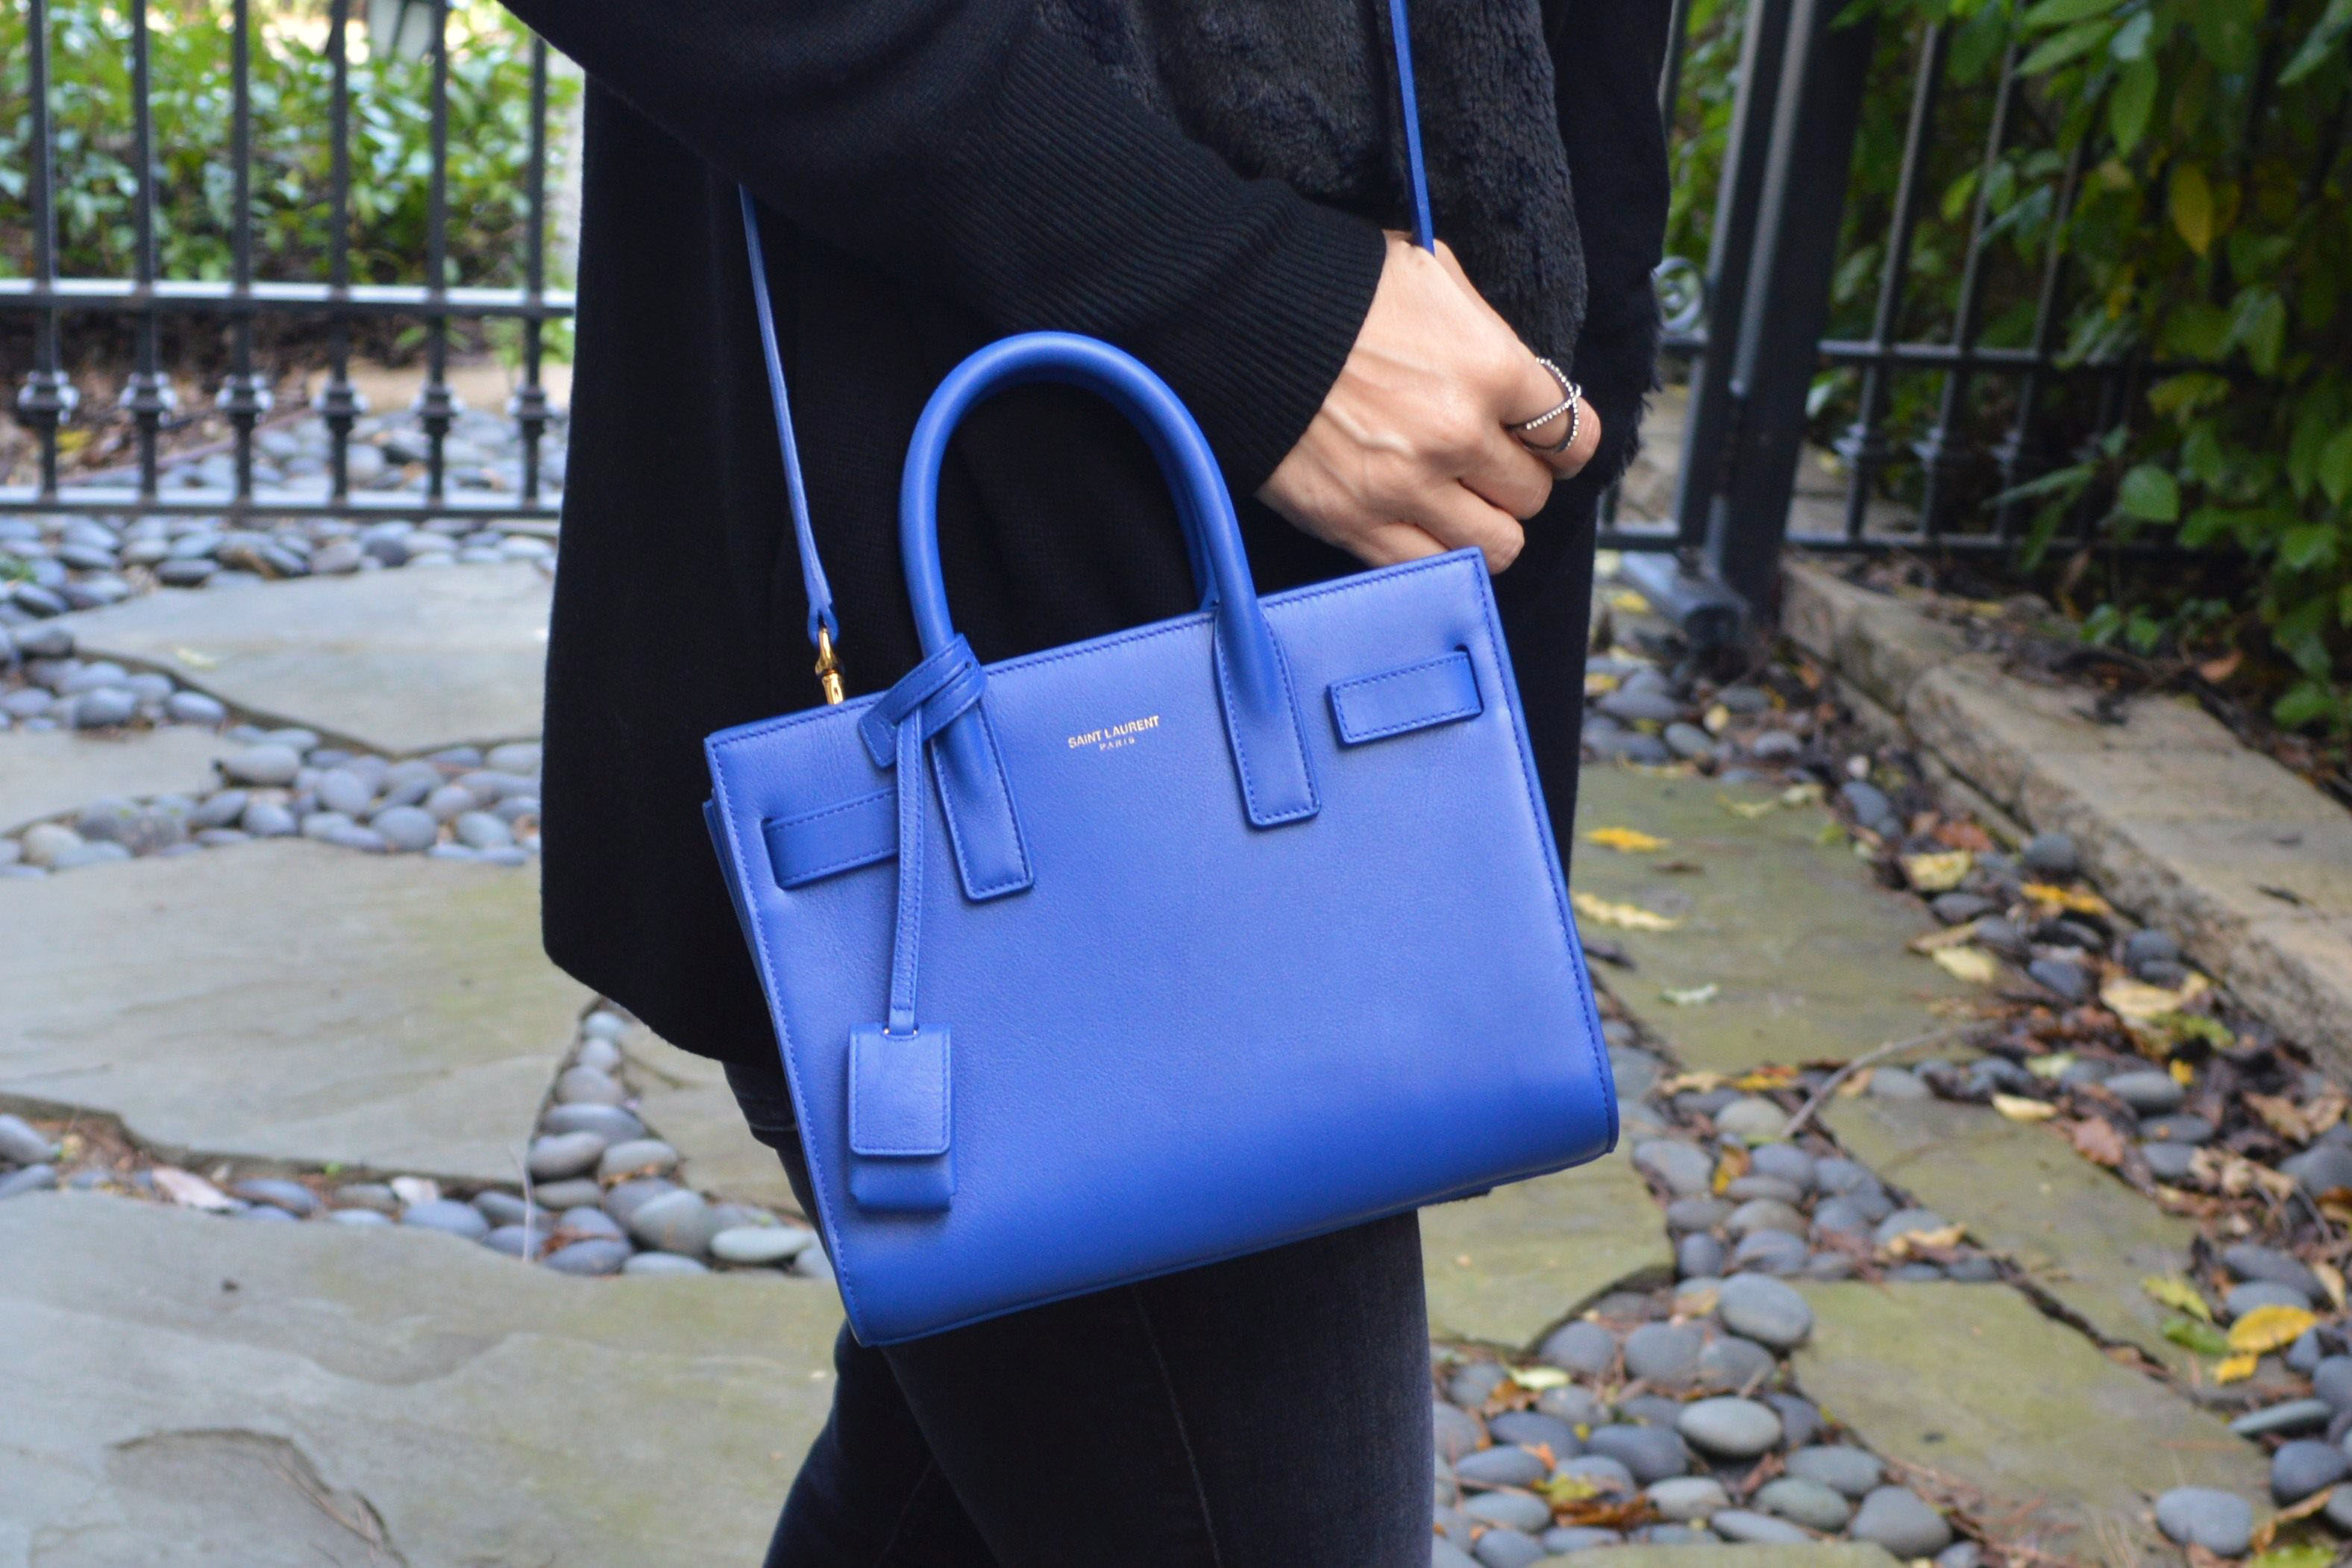 ysl rive gauche bag - Saint Laurent Sac du Jour nano tote review | Bay Area Fashionista